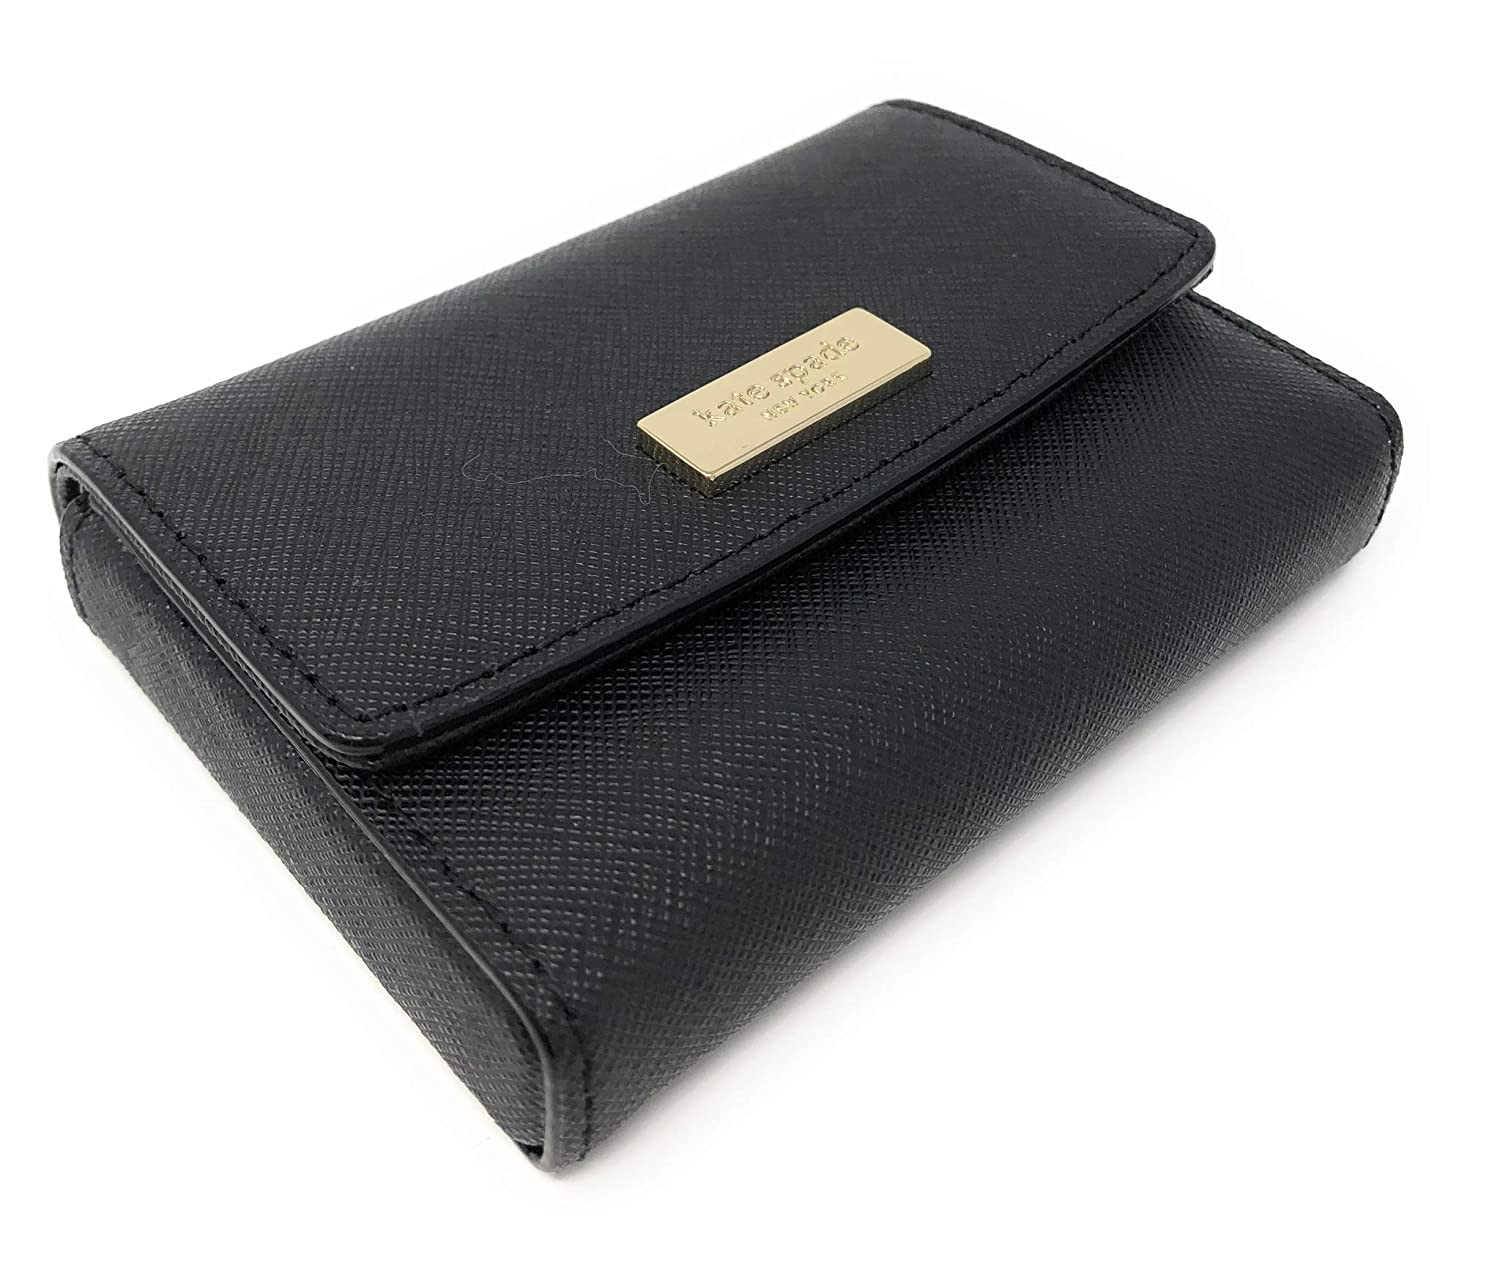 Kate Spade Newbury Lane Large Holly Business Card Case Holder WLRU2350 (Black) 00_FEGEPXQN_02